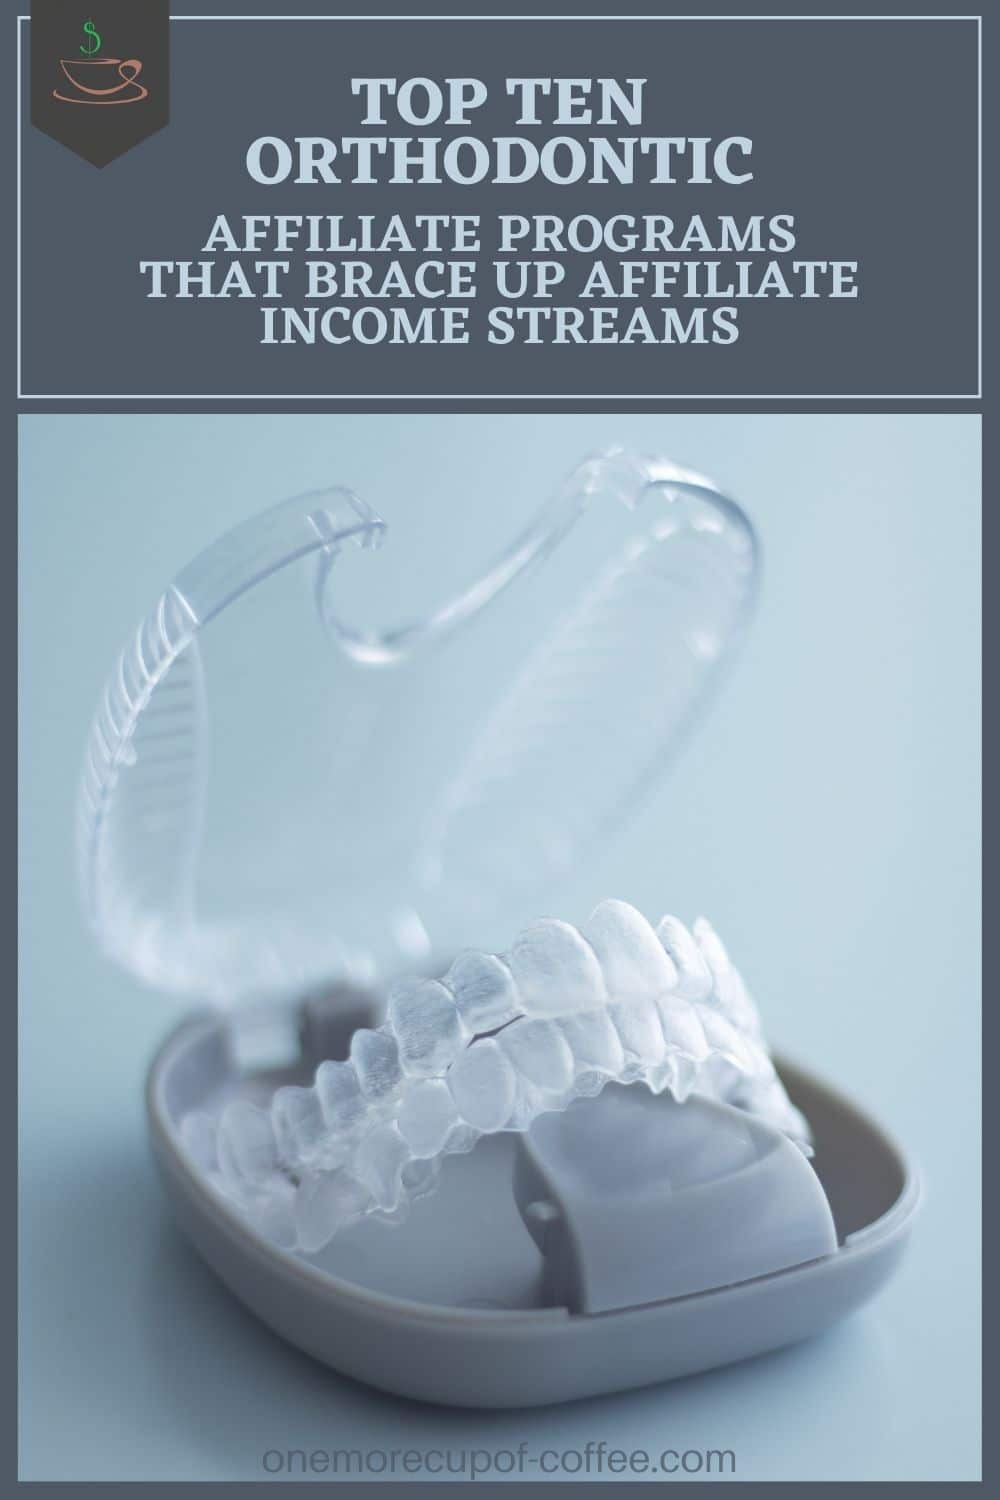 """closeup image of a clear retainer in its case, with text overlay at the top in dark blue background """"Top Ten Orthodontic Affiliate Programs That Brace Up Affiliate Income Streams"""""""